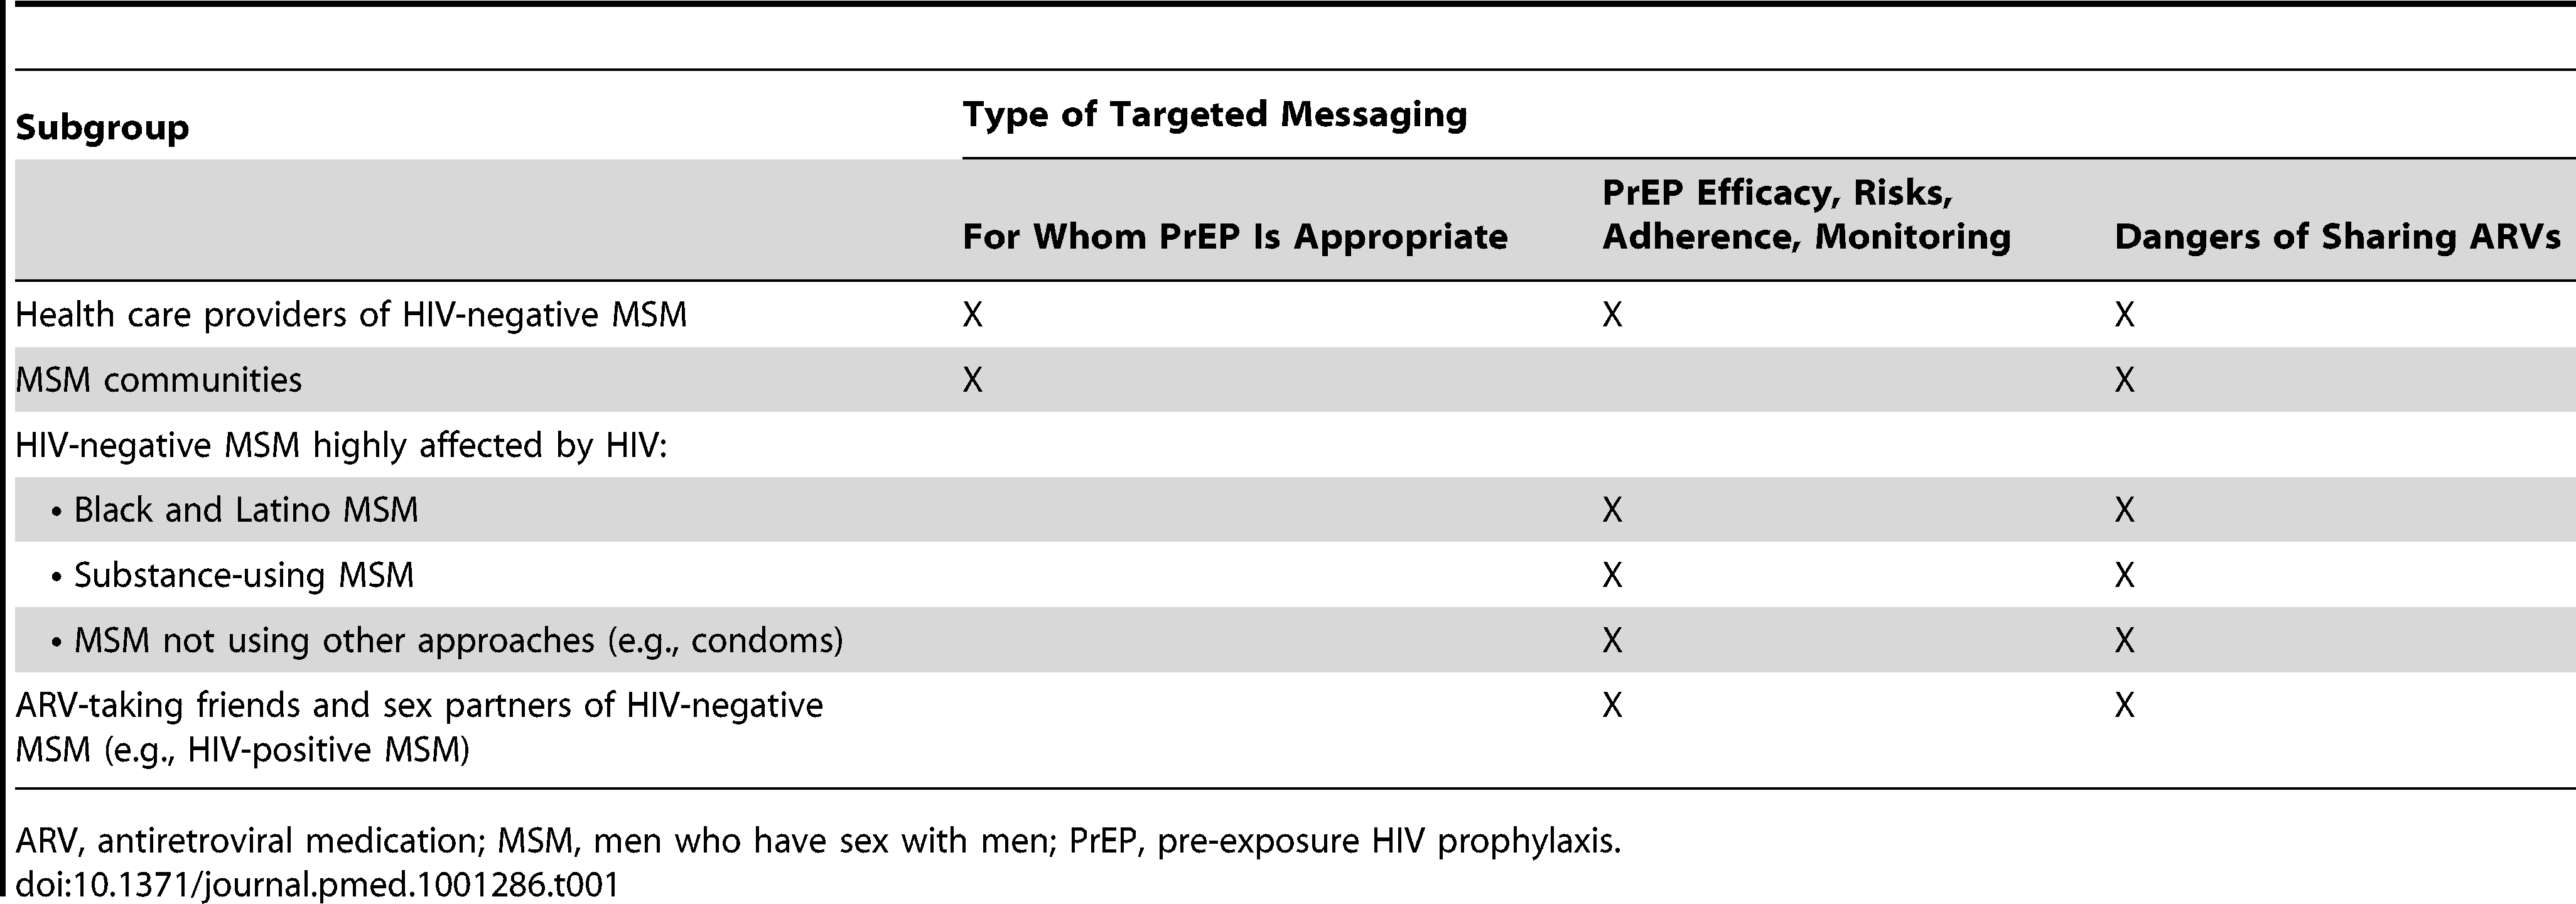 Types of targeted PrEP messaging needed for MSM and health care providers by subgroup.